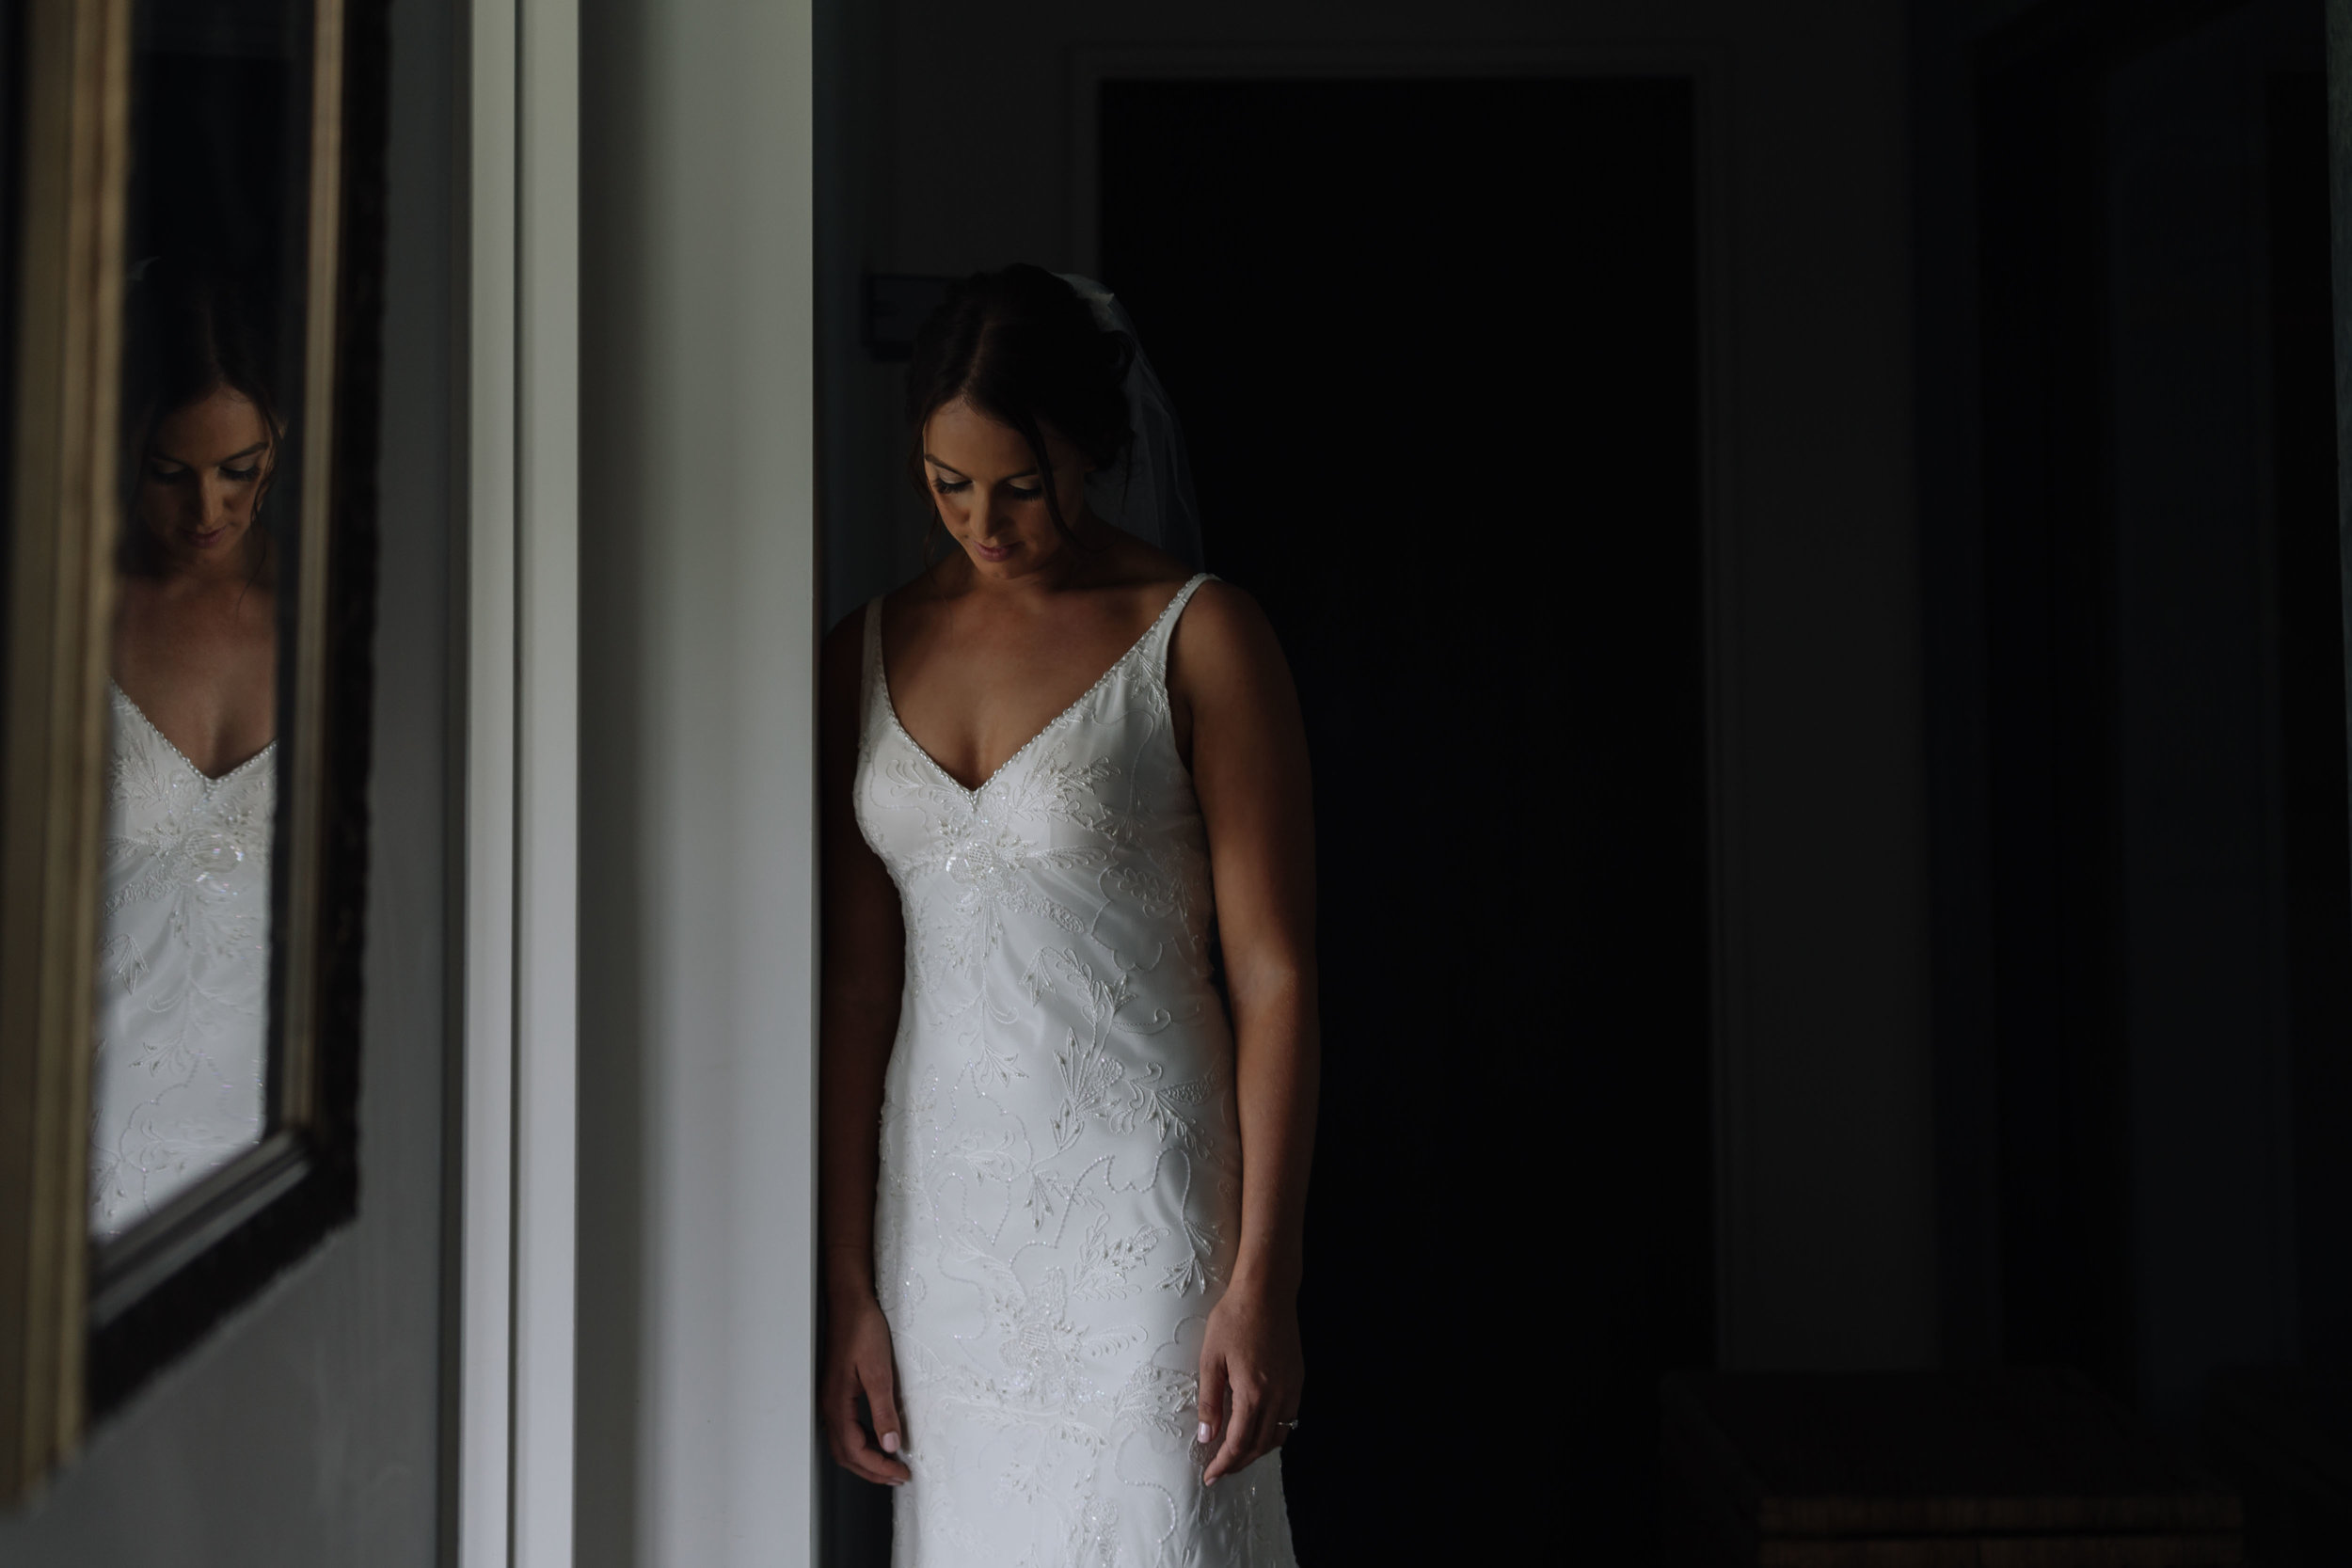 Bride in doorway photo. Natural light, wedding photography. Coromandel coast wedding